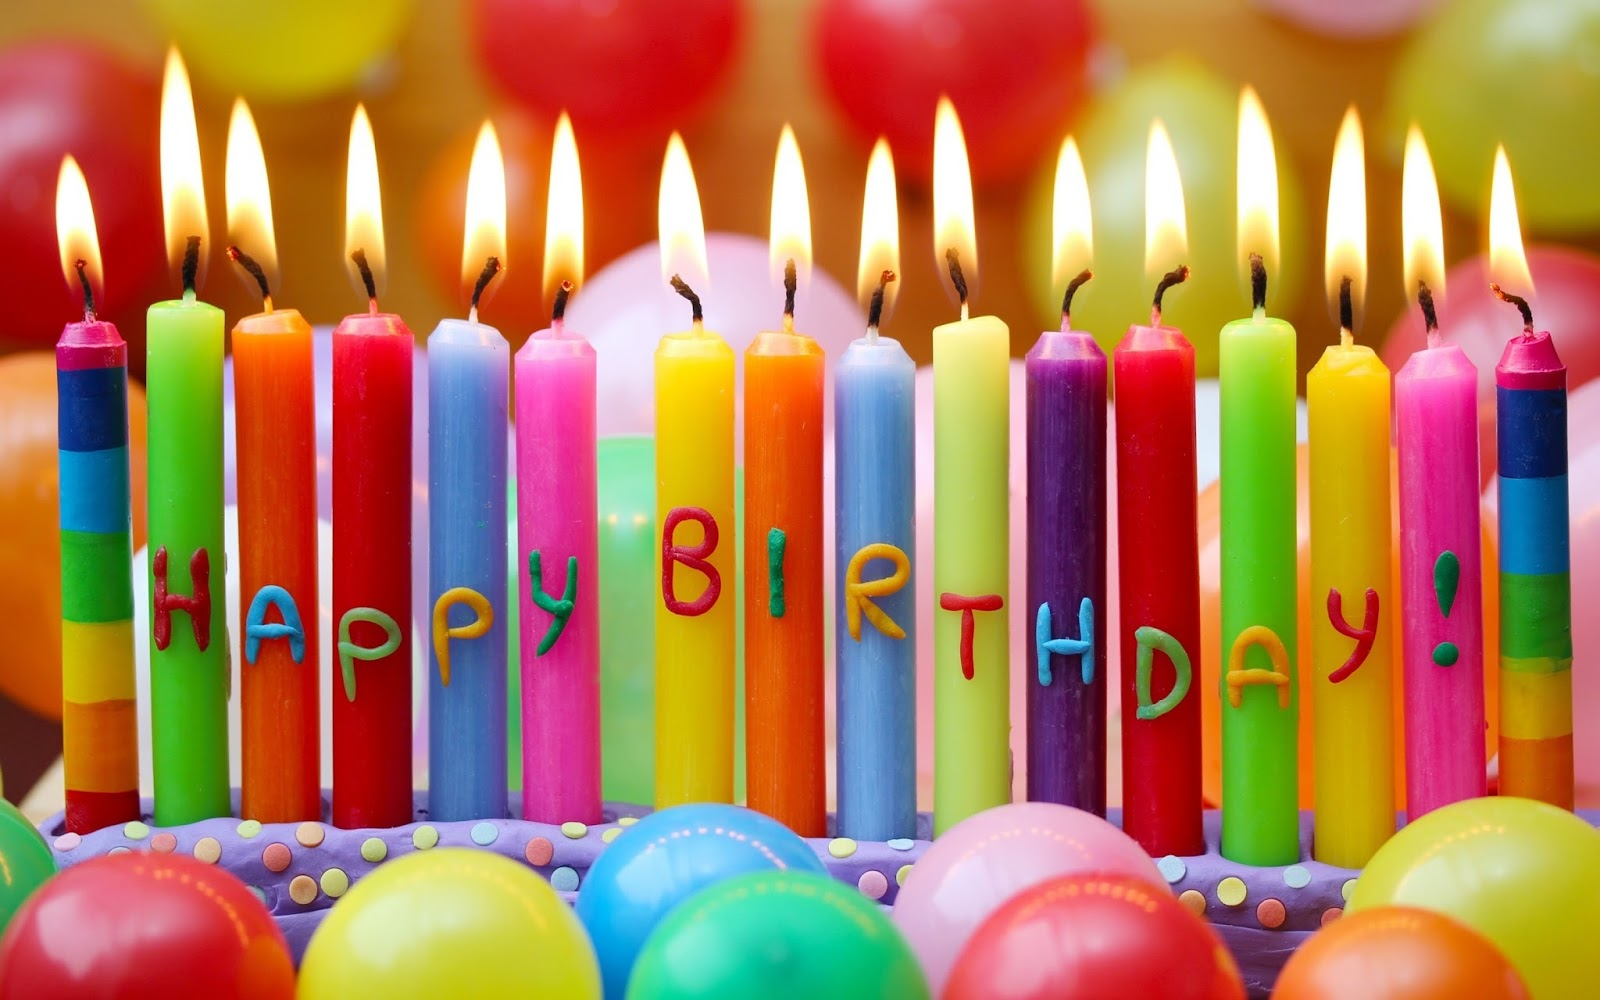 ... Images & Beautiful Birthday Wishes Pictures 1080p HD - HD IMAGES